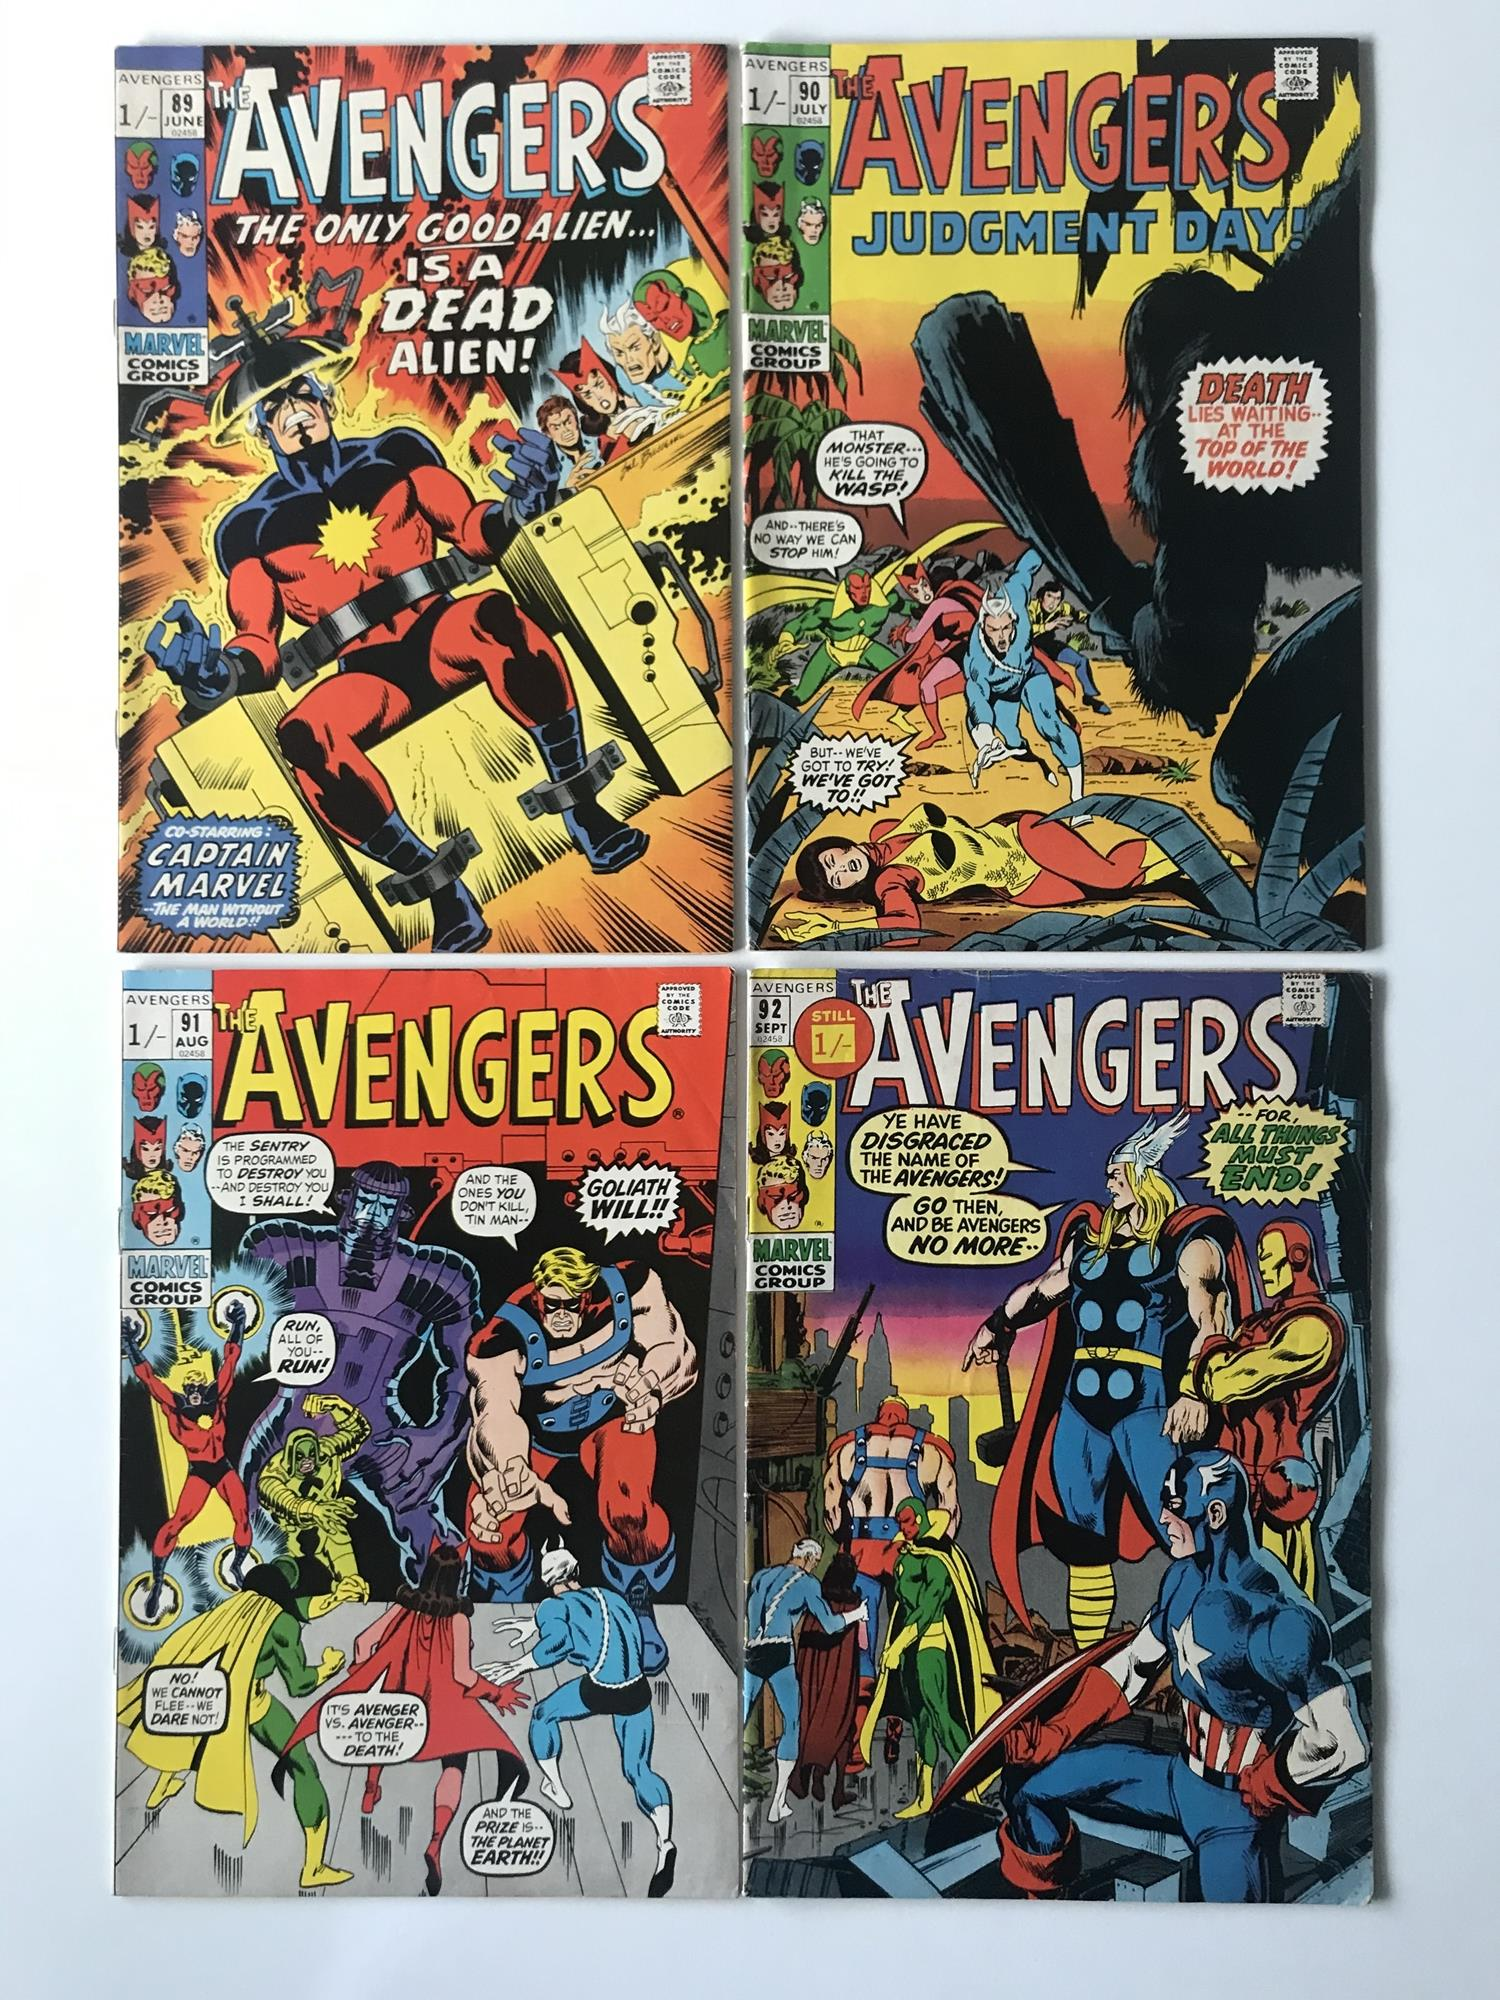 Lot 48 - AVENGERS # 89, 90, 91, 92 (Group of 4) - (1971 - MARVEL - Pence Copy) - Run includes classic Captain